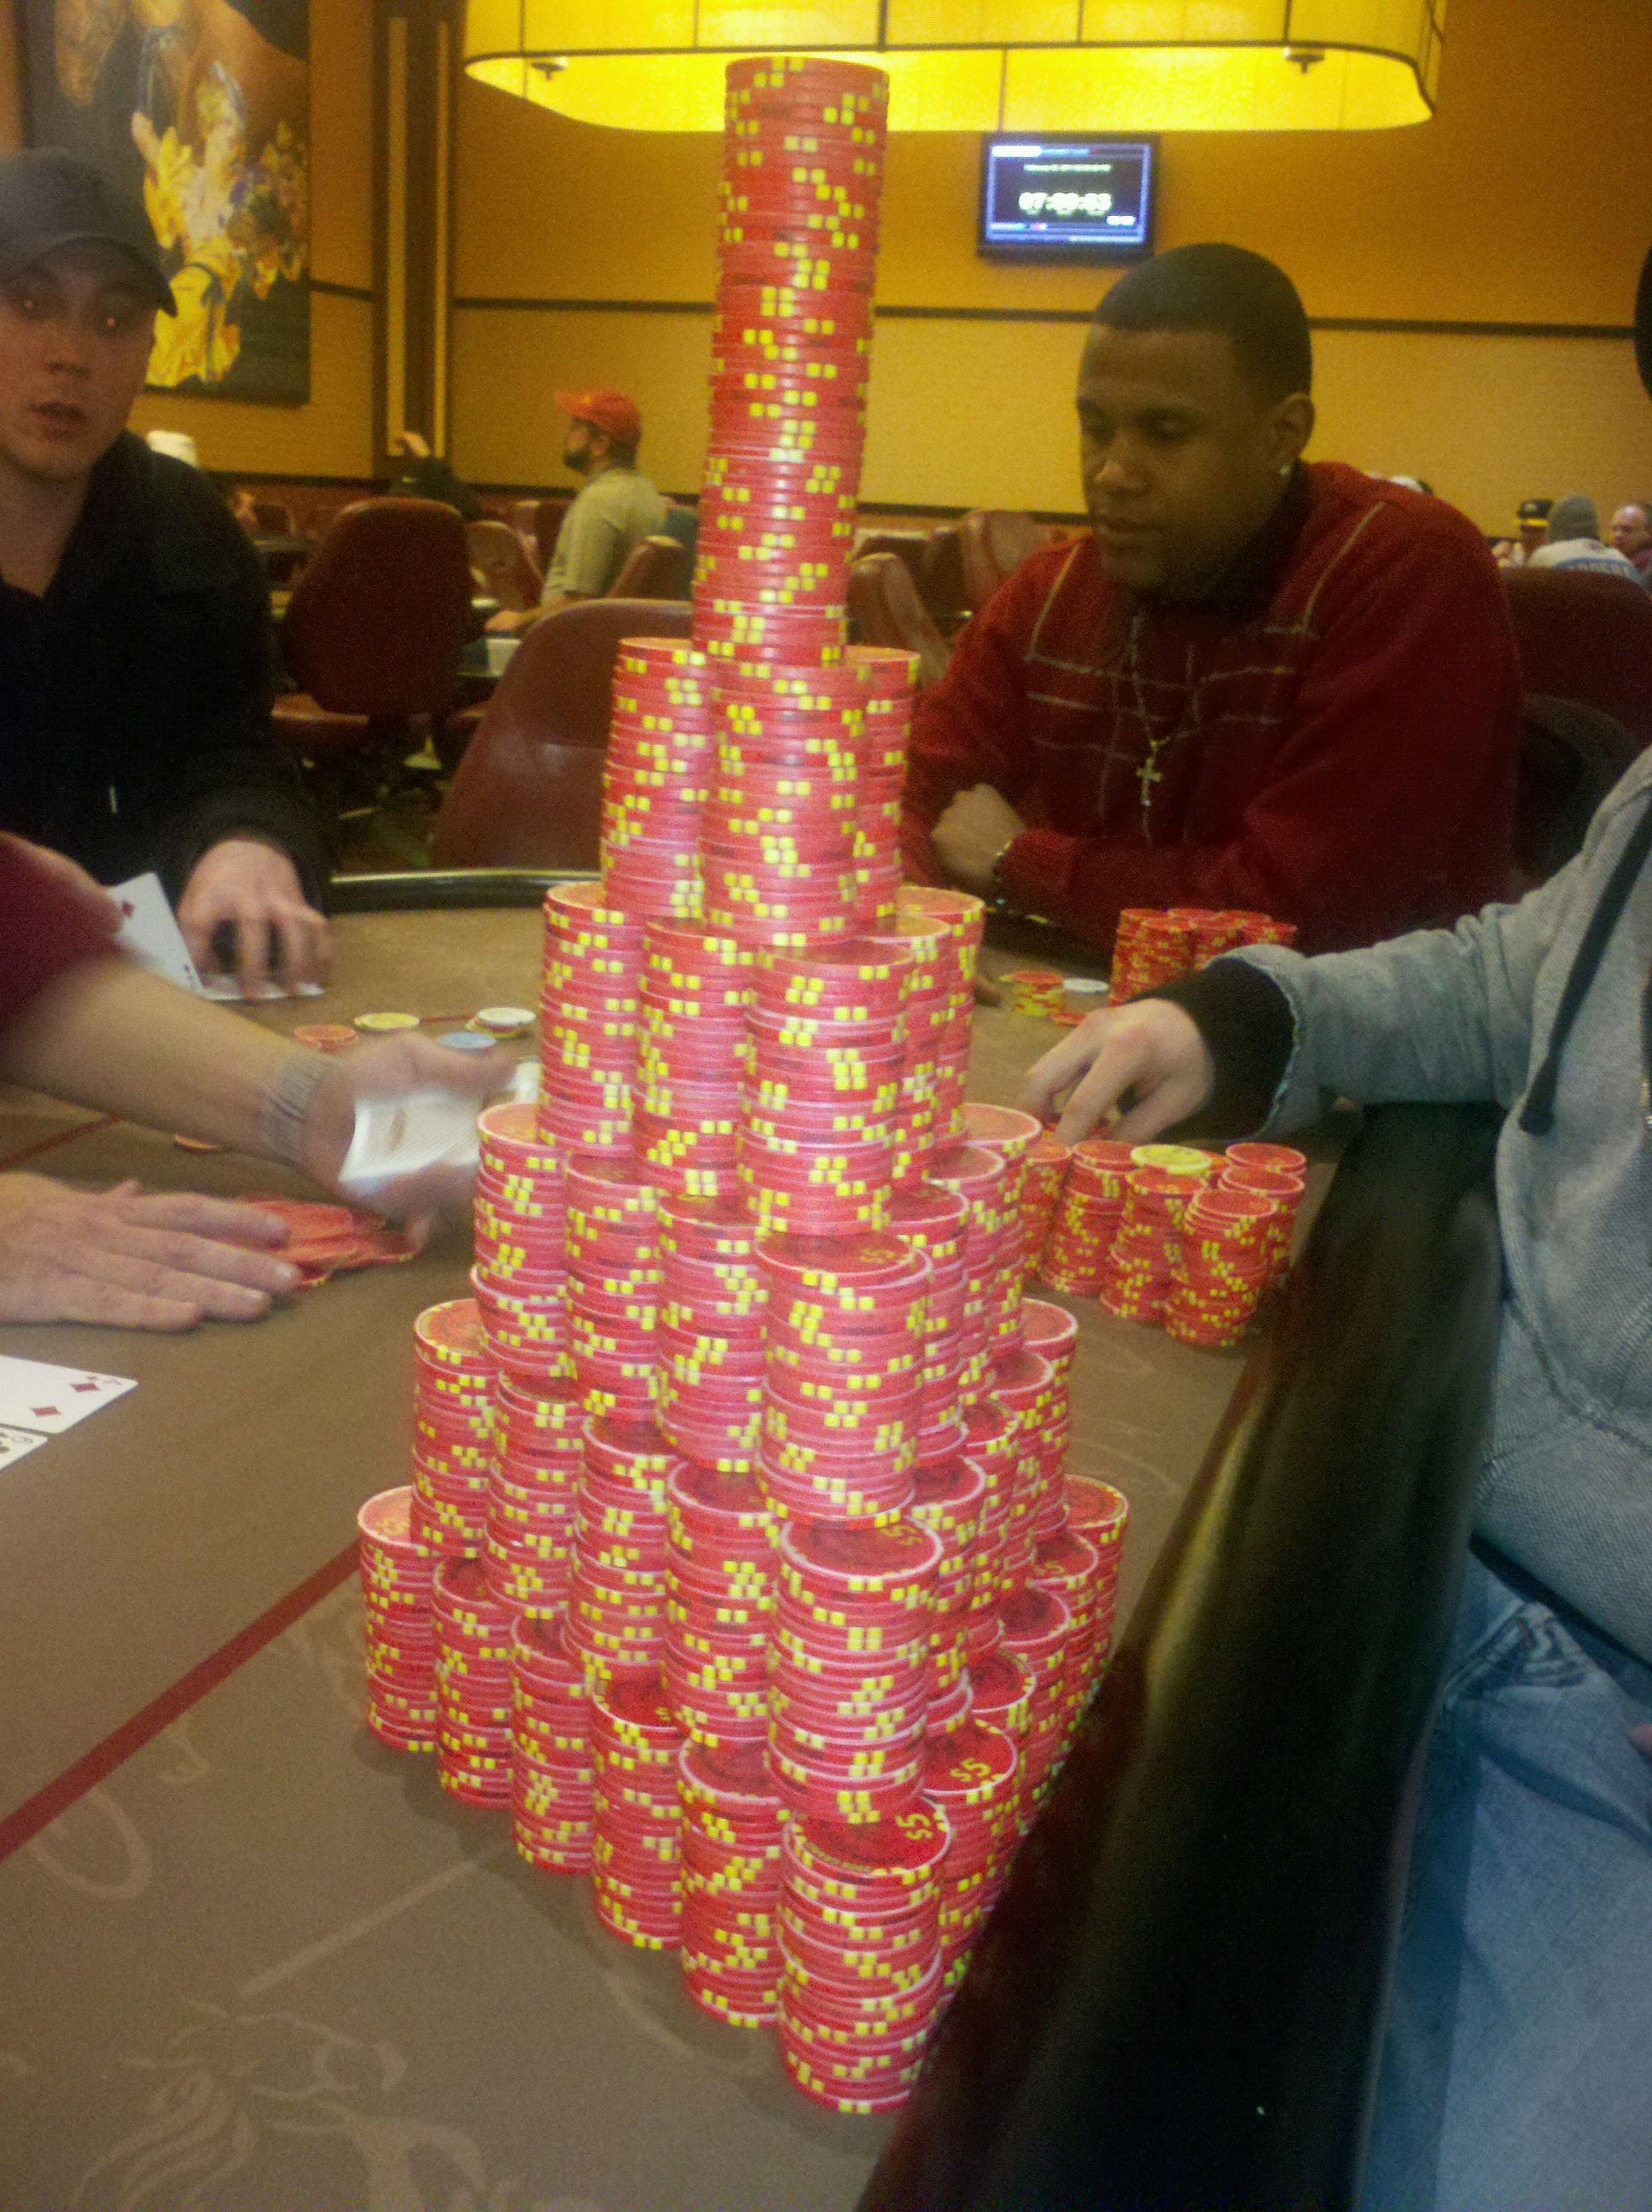 Huge poker chip stack / Gambling day